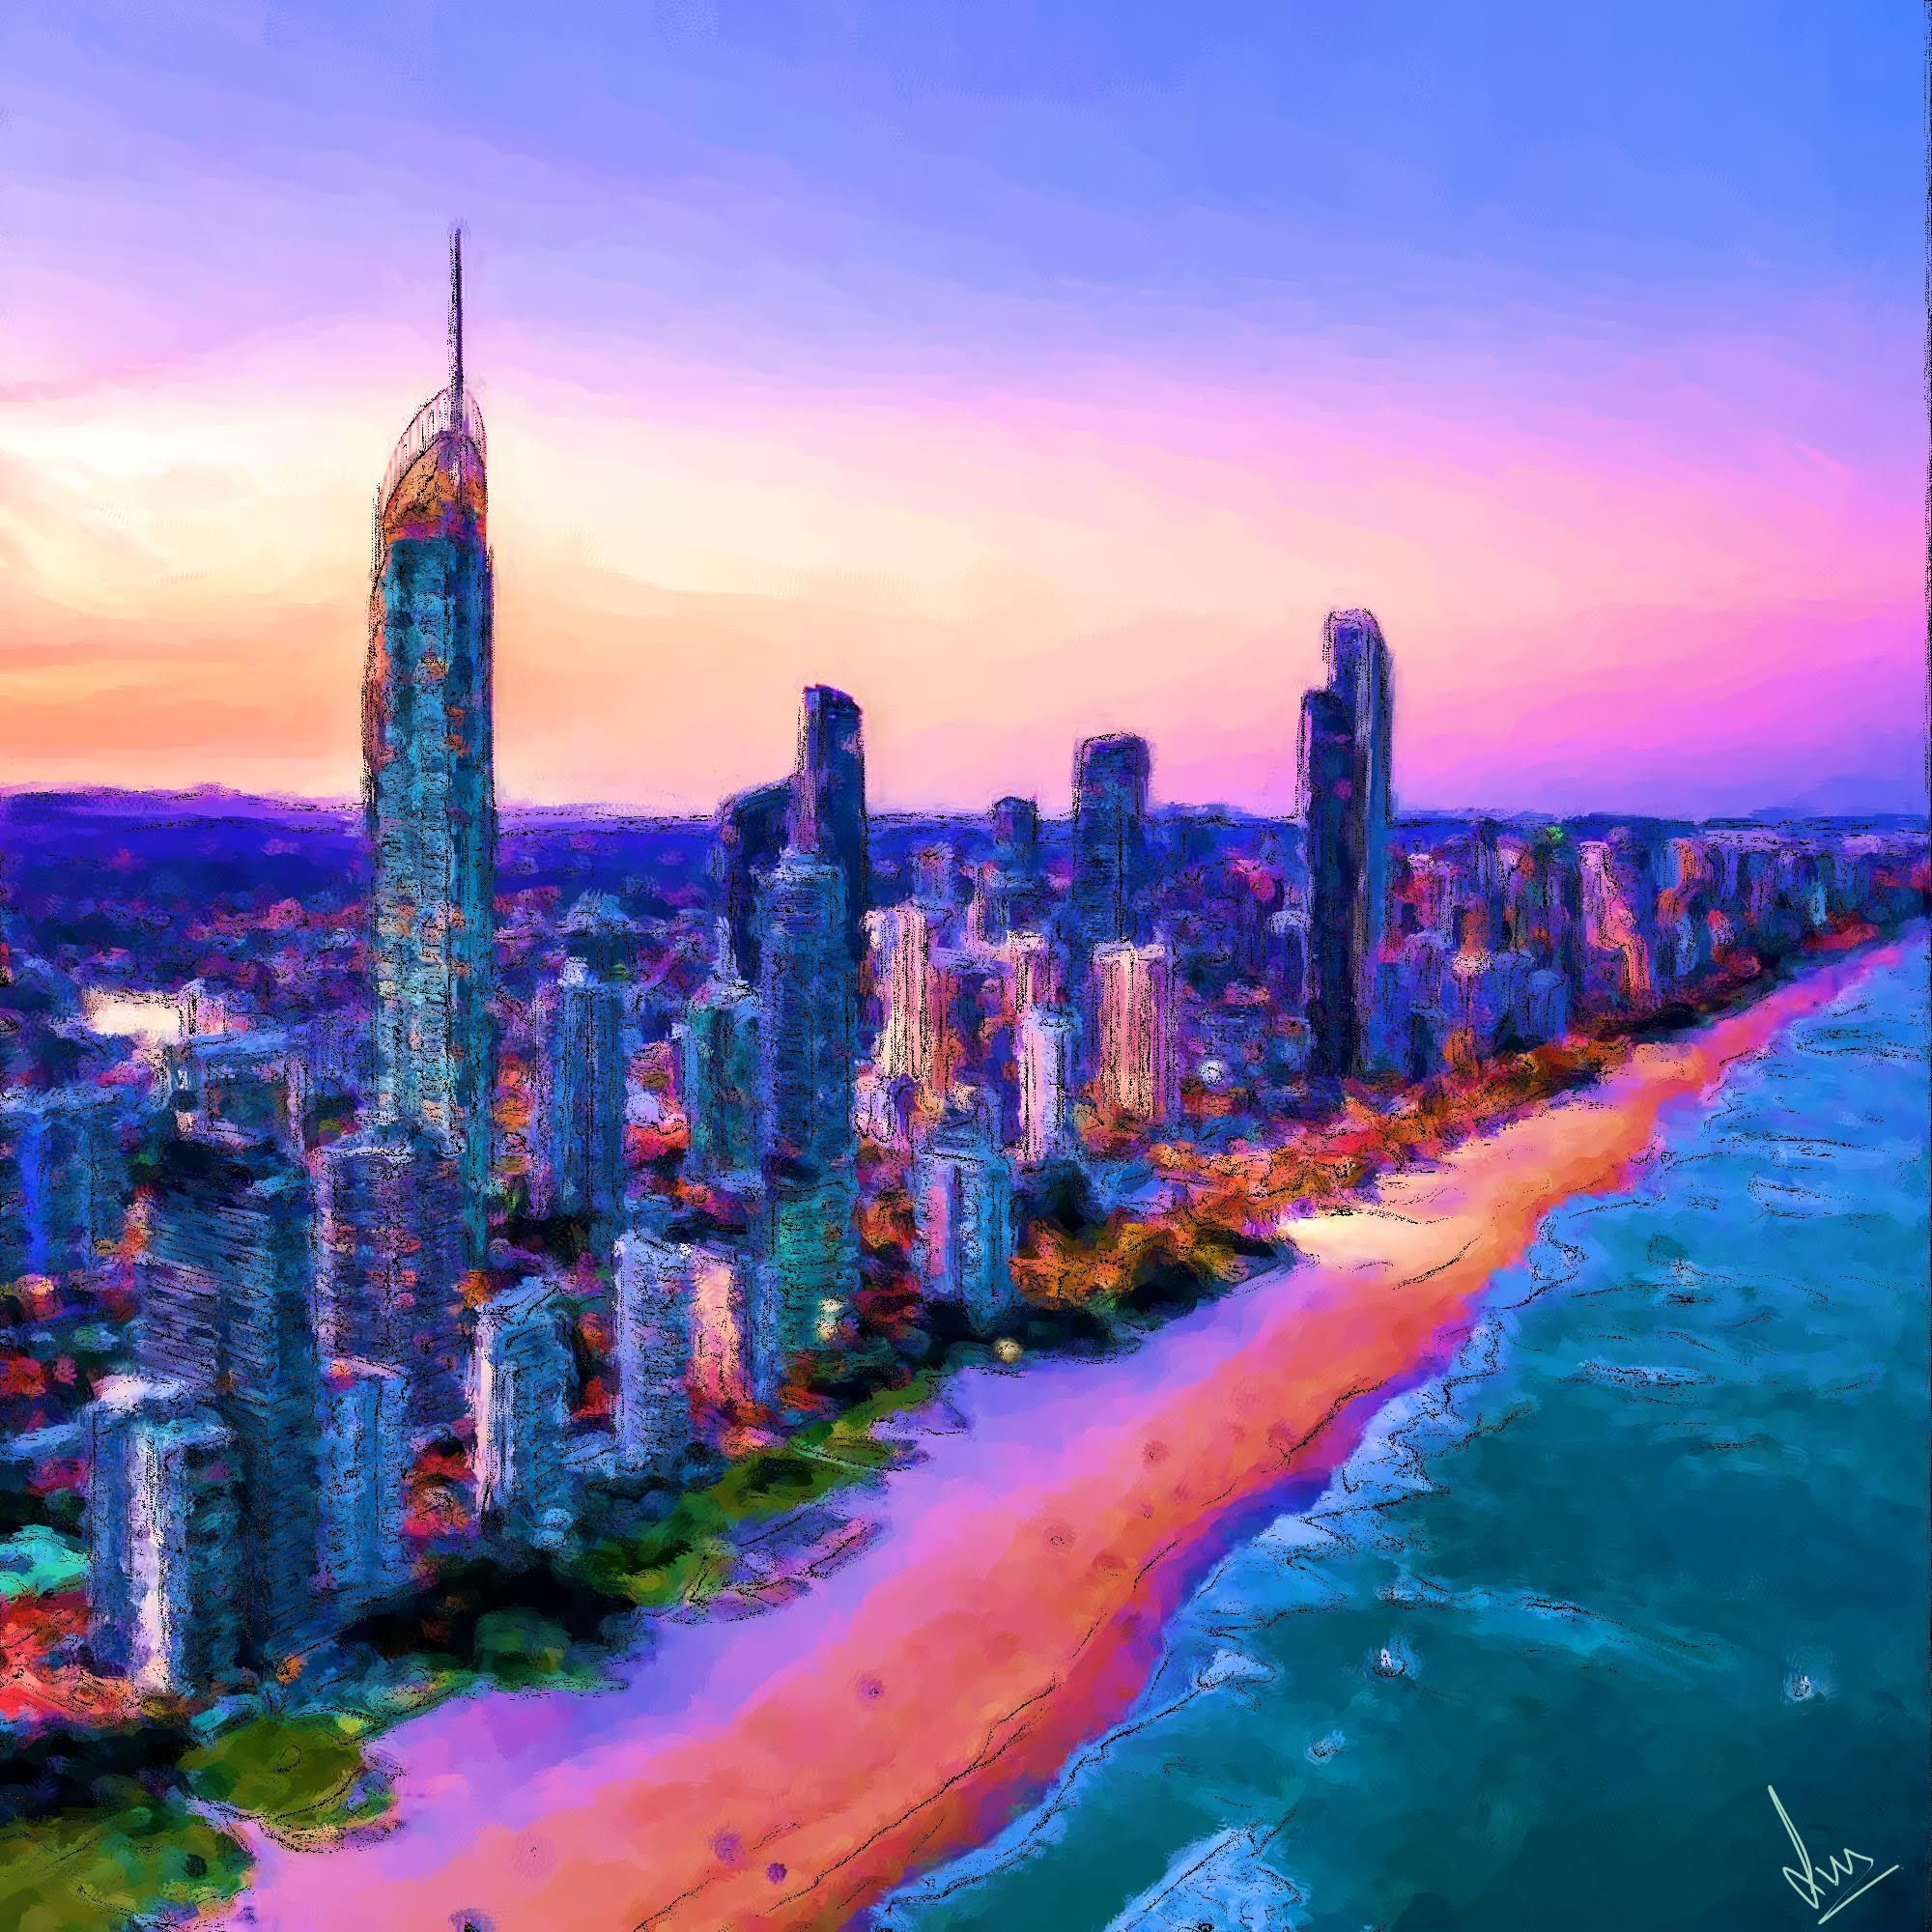 Surfer's Paradise, Goldcoast, Queensland, Australia - Digital Painting by Shaalyn Monteiro